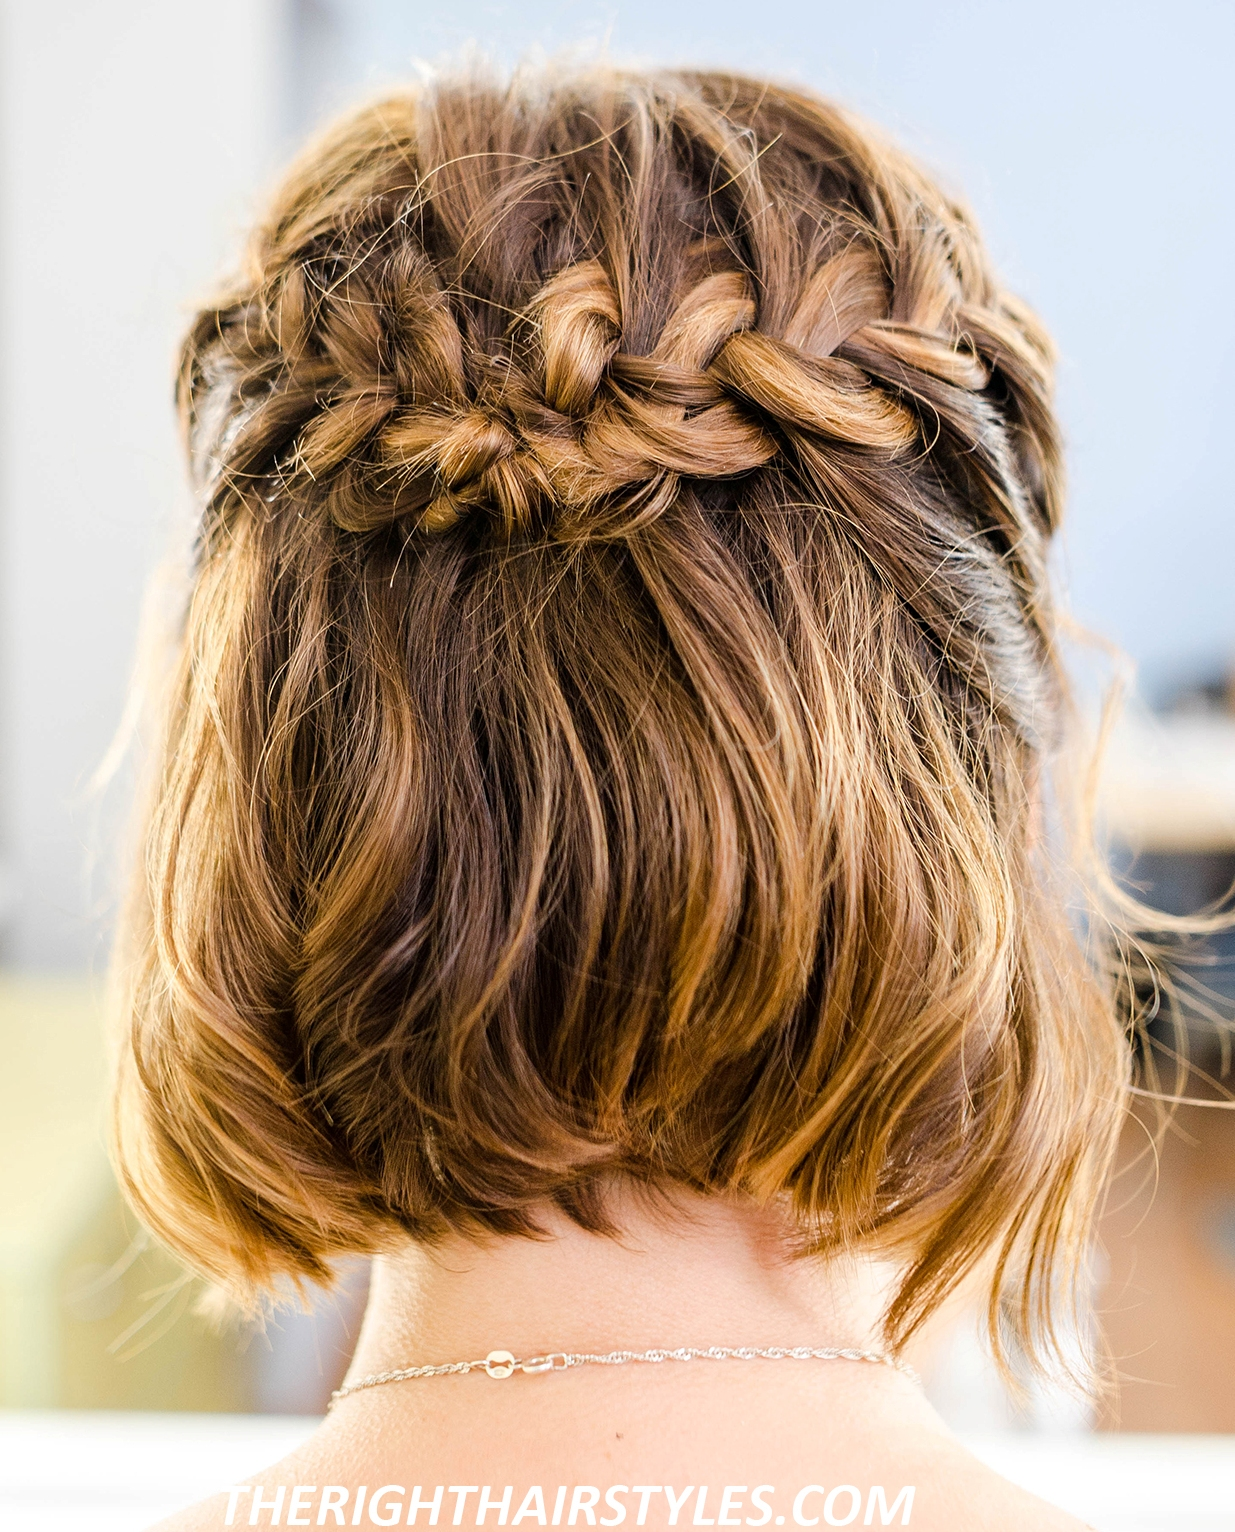 How To Do A Half-Up French Braid Crown In 6 Easy Steps